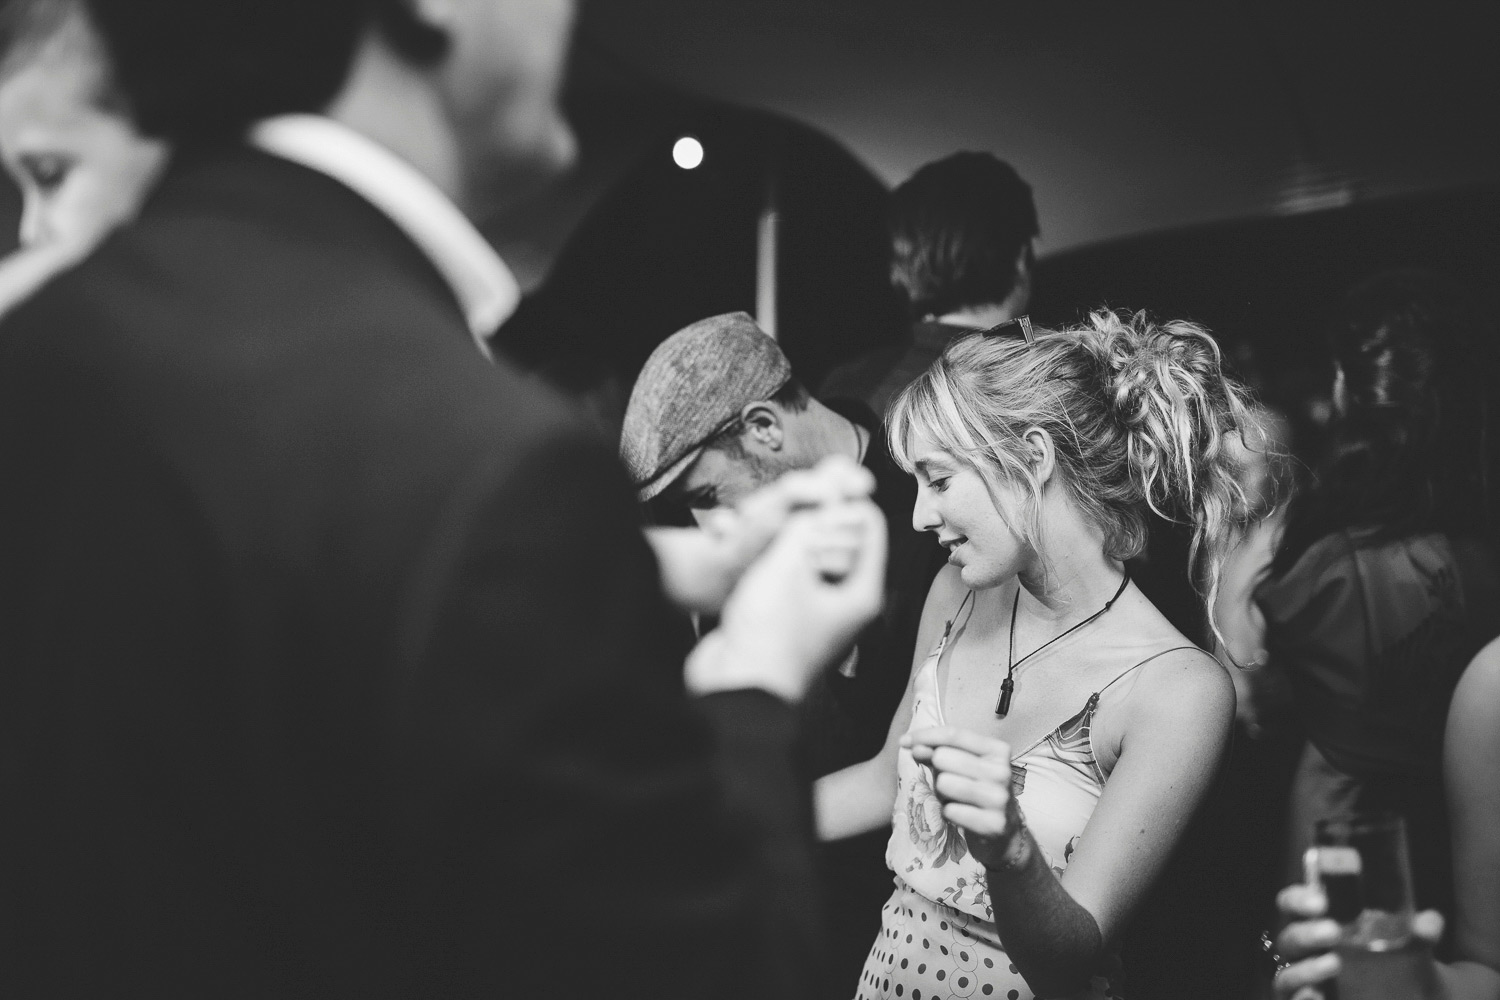 cape-town-wedding-photographer-western-cape-constansia-camilla-charlie-ray127.jpg